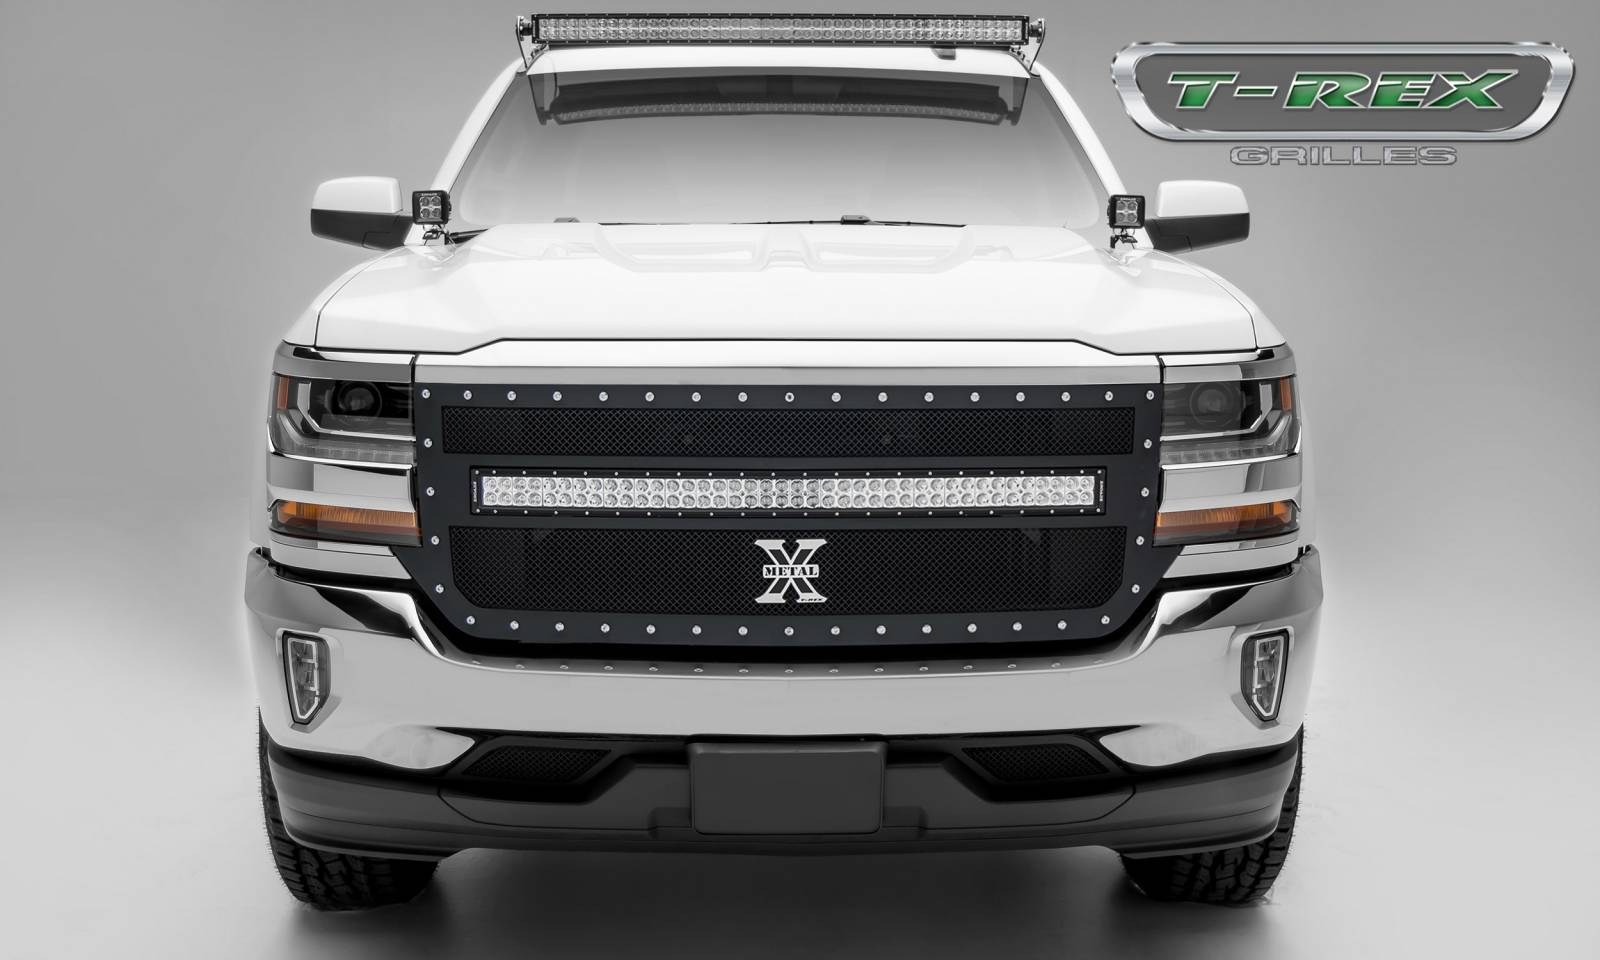 Chevrolet Silverado Torch Series 1 40 Led Light Bar Middle